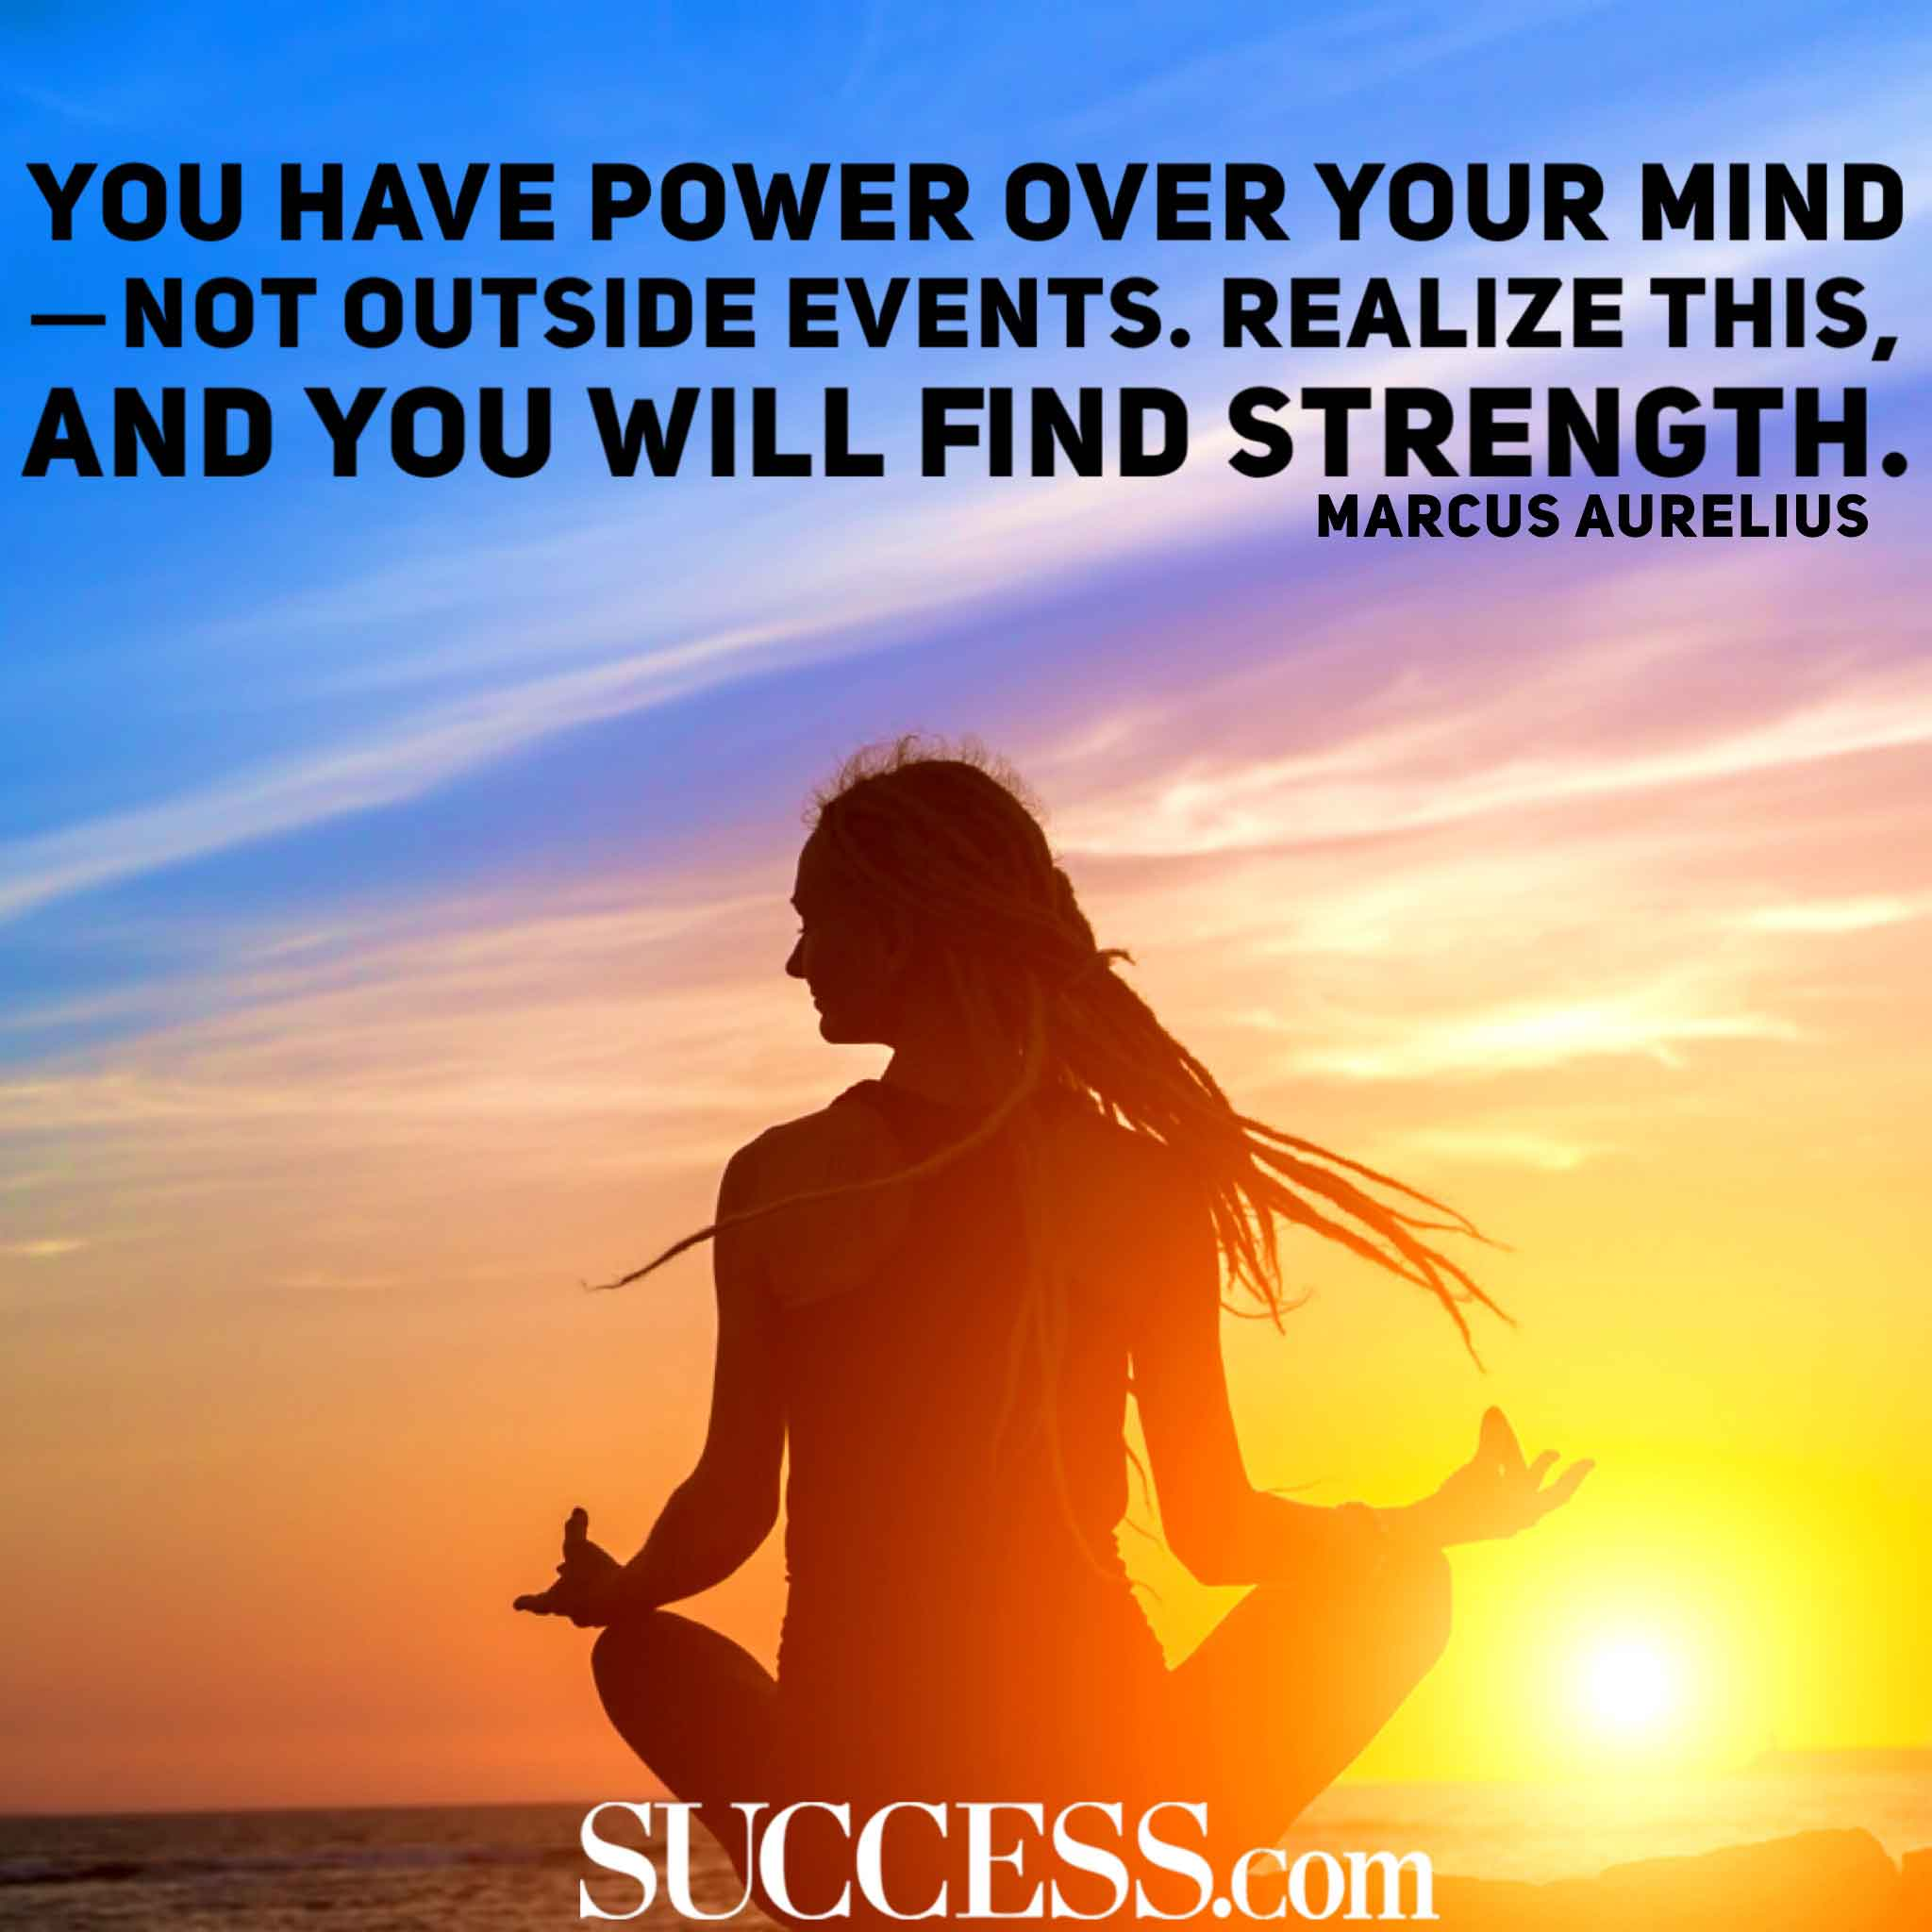 Quotes Strength: 13 Powerful Quotes About Inner Strength